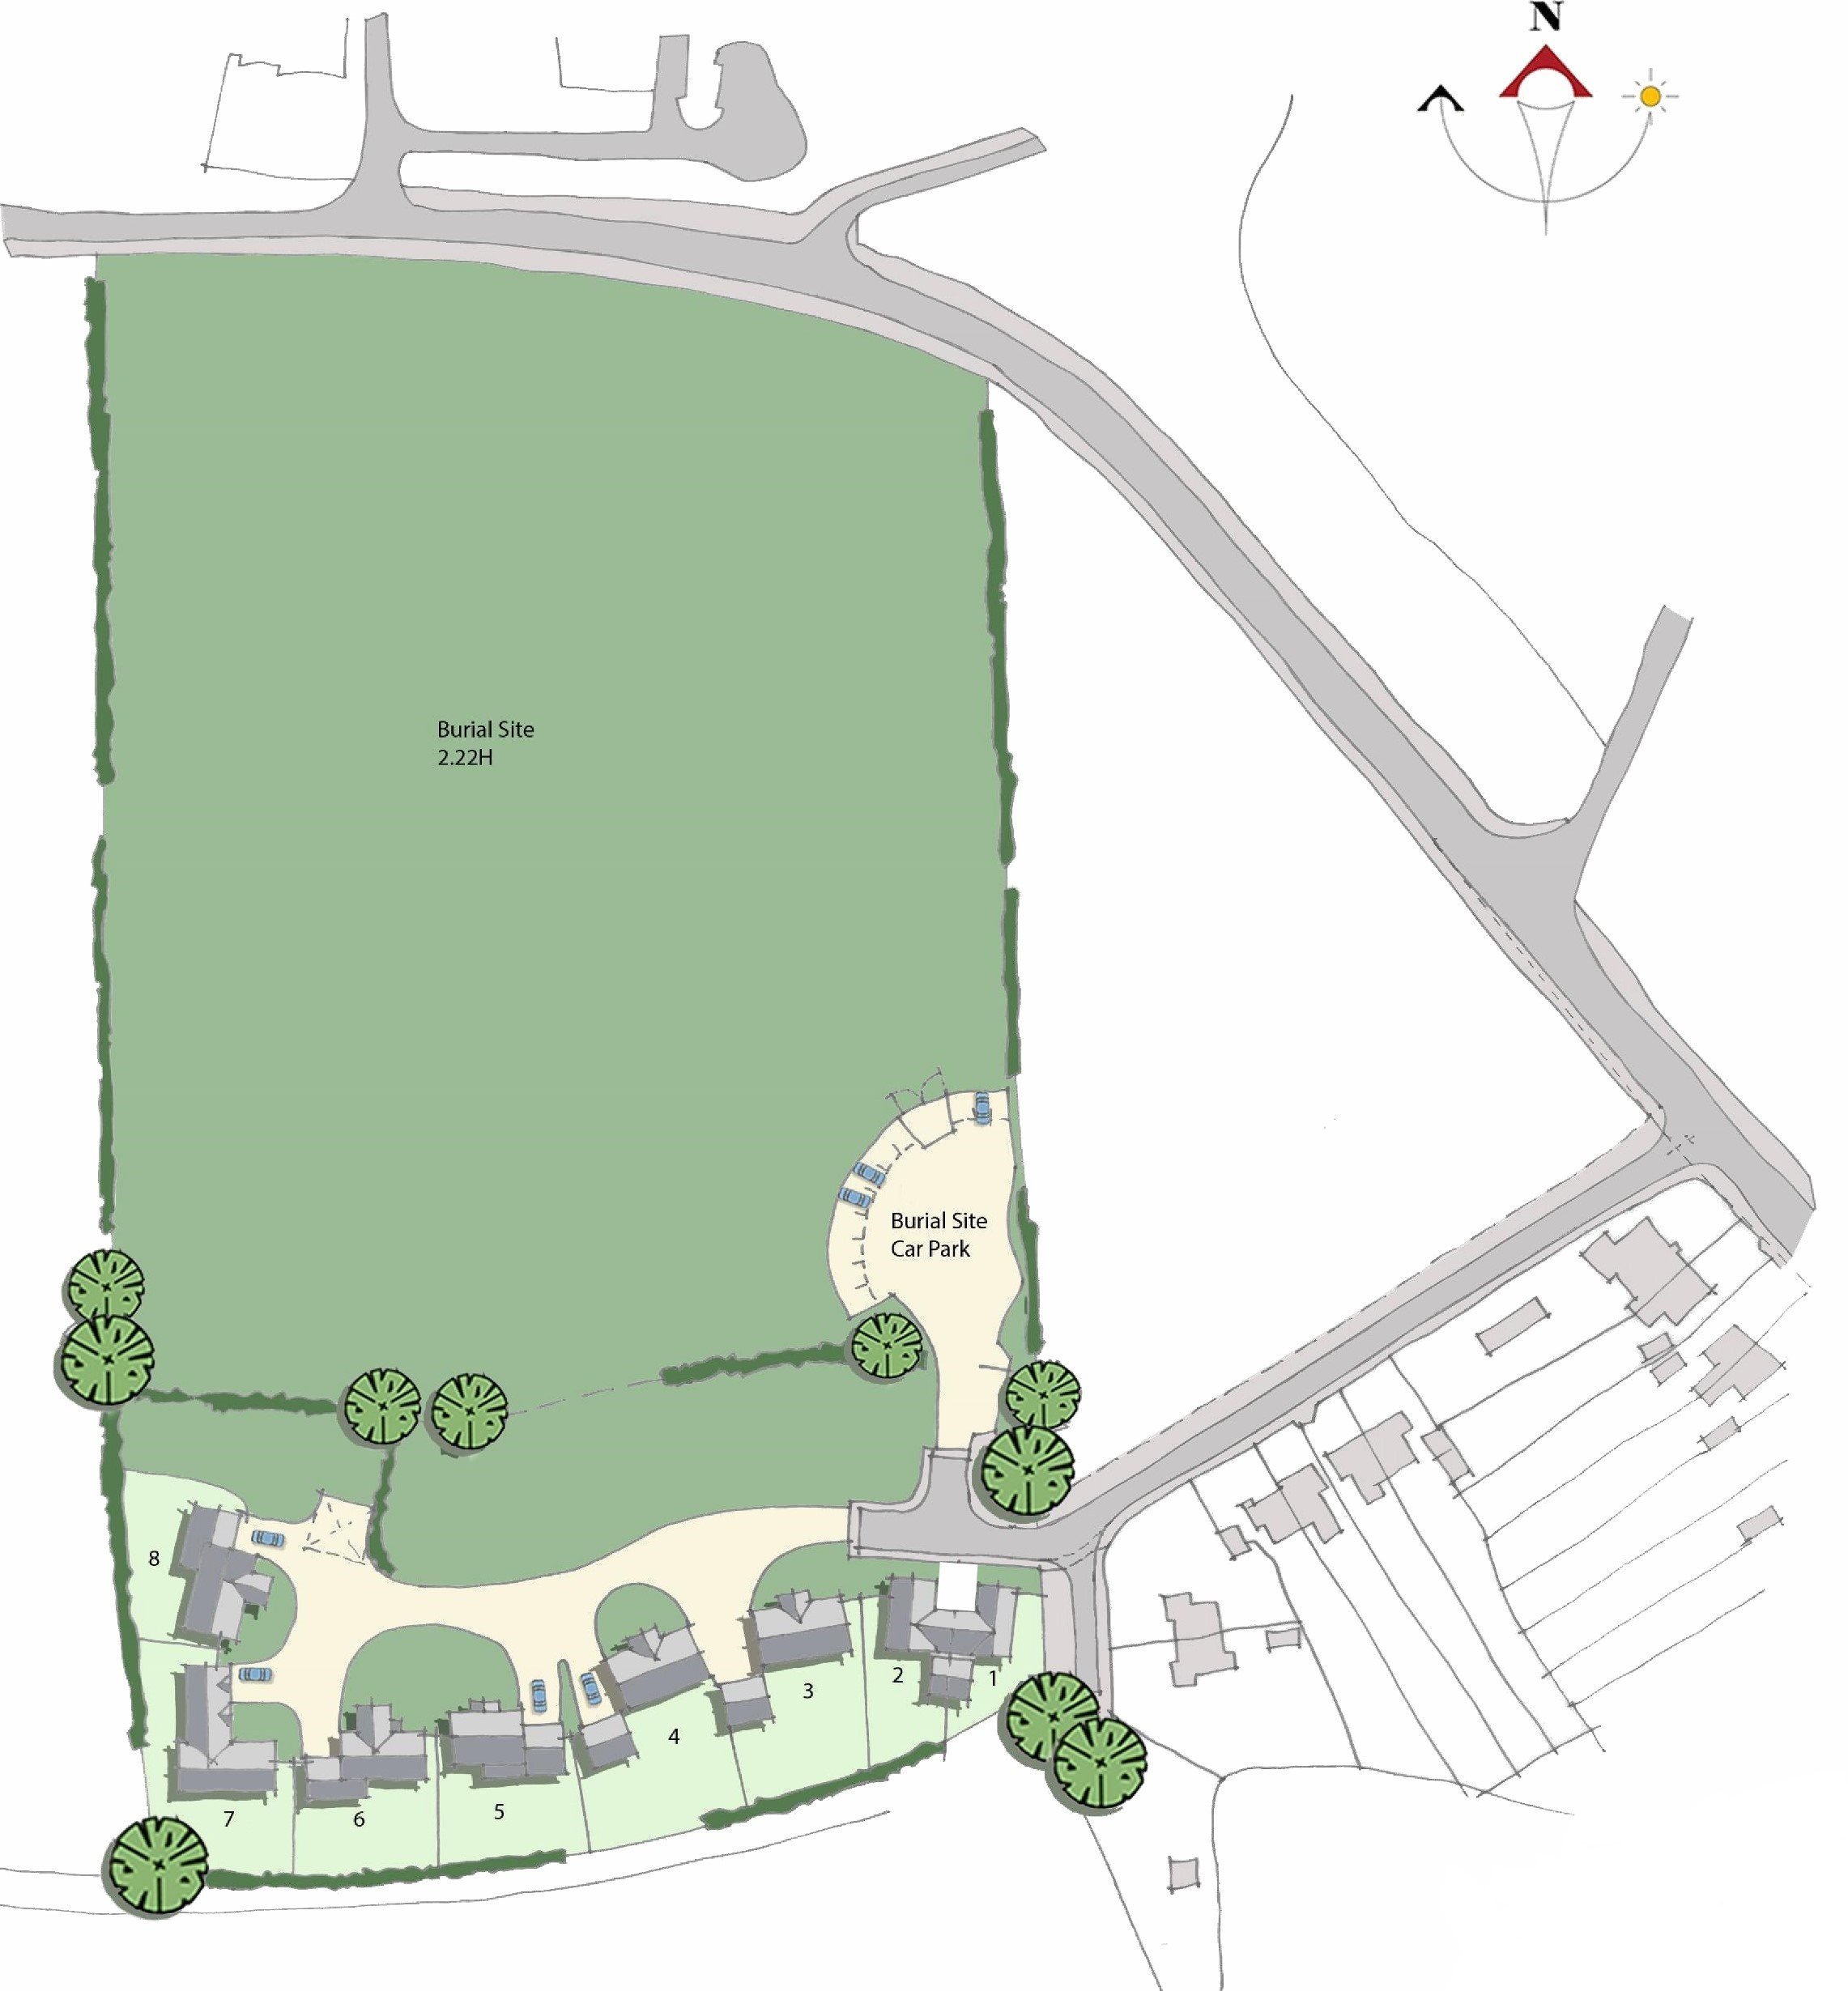 New Major Burial Site and Housing Scheme approved